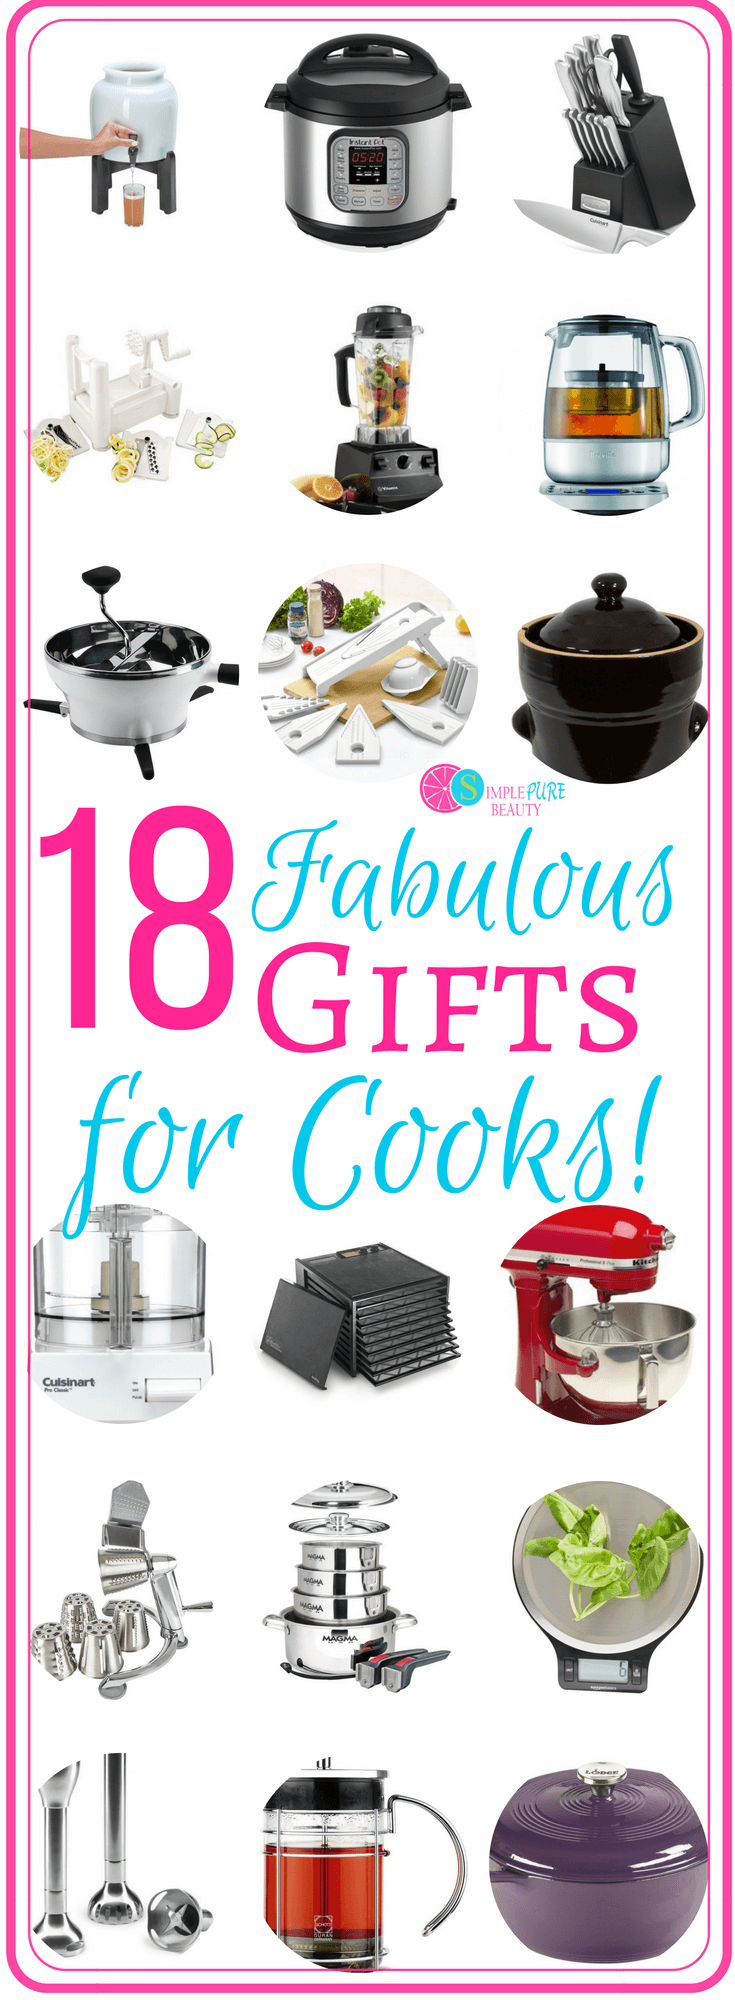 Need some gift ideas for the cook in your family? Look no further! Check out these fabulous gifts that will save your cook tons of time and energy in the kitchen!